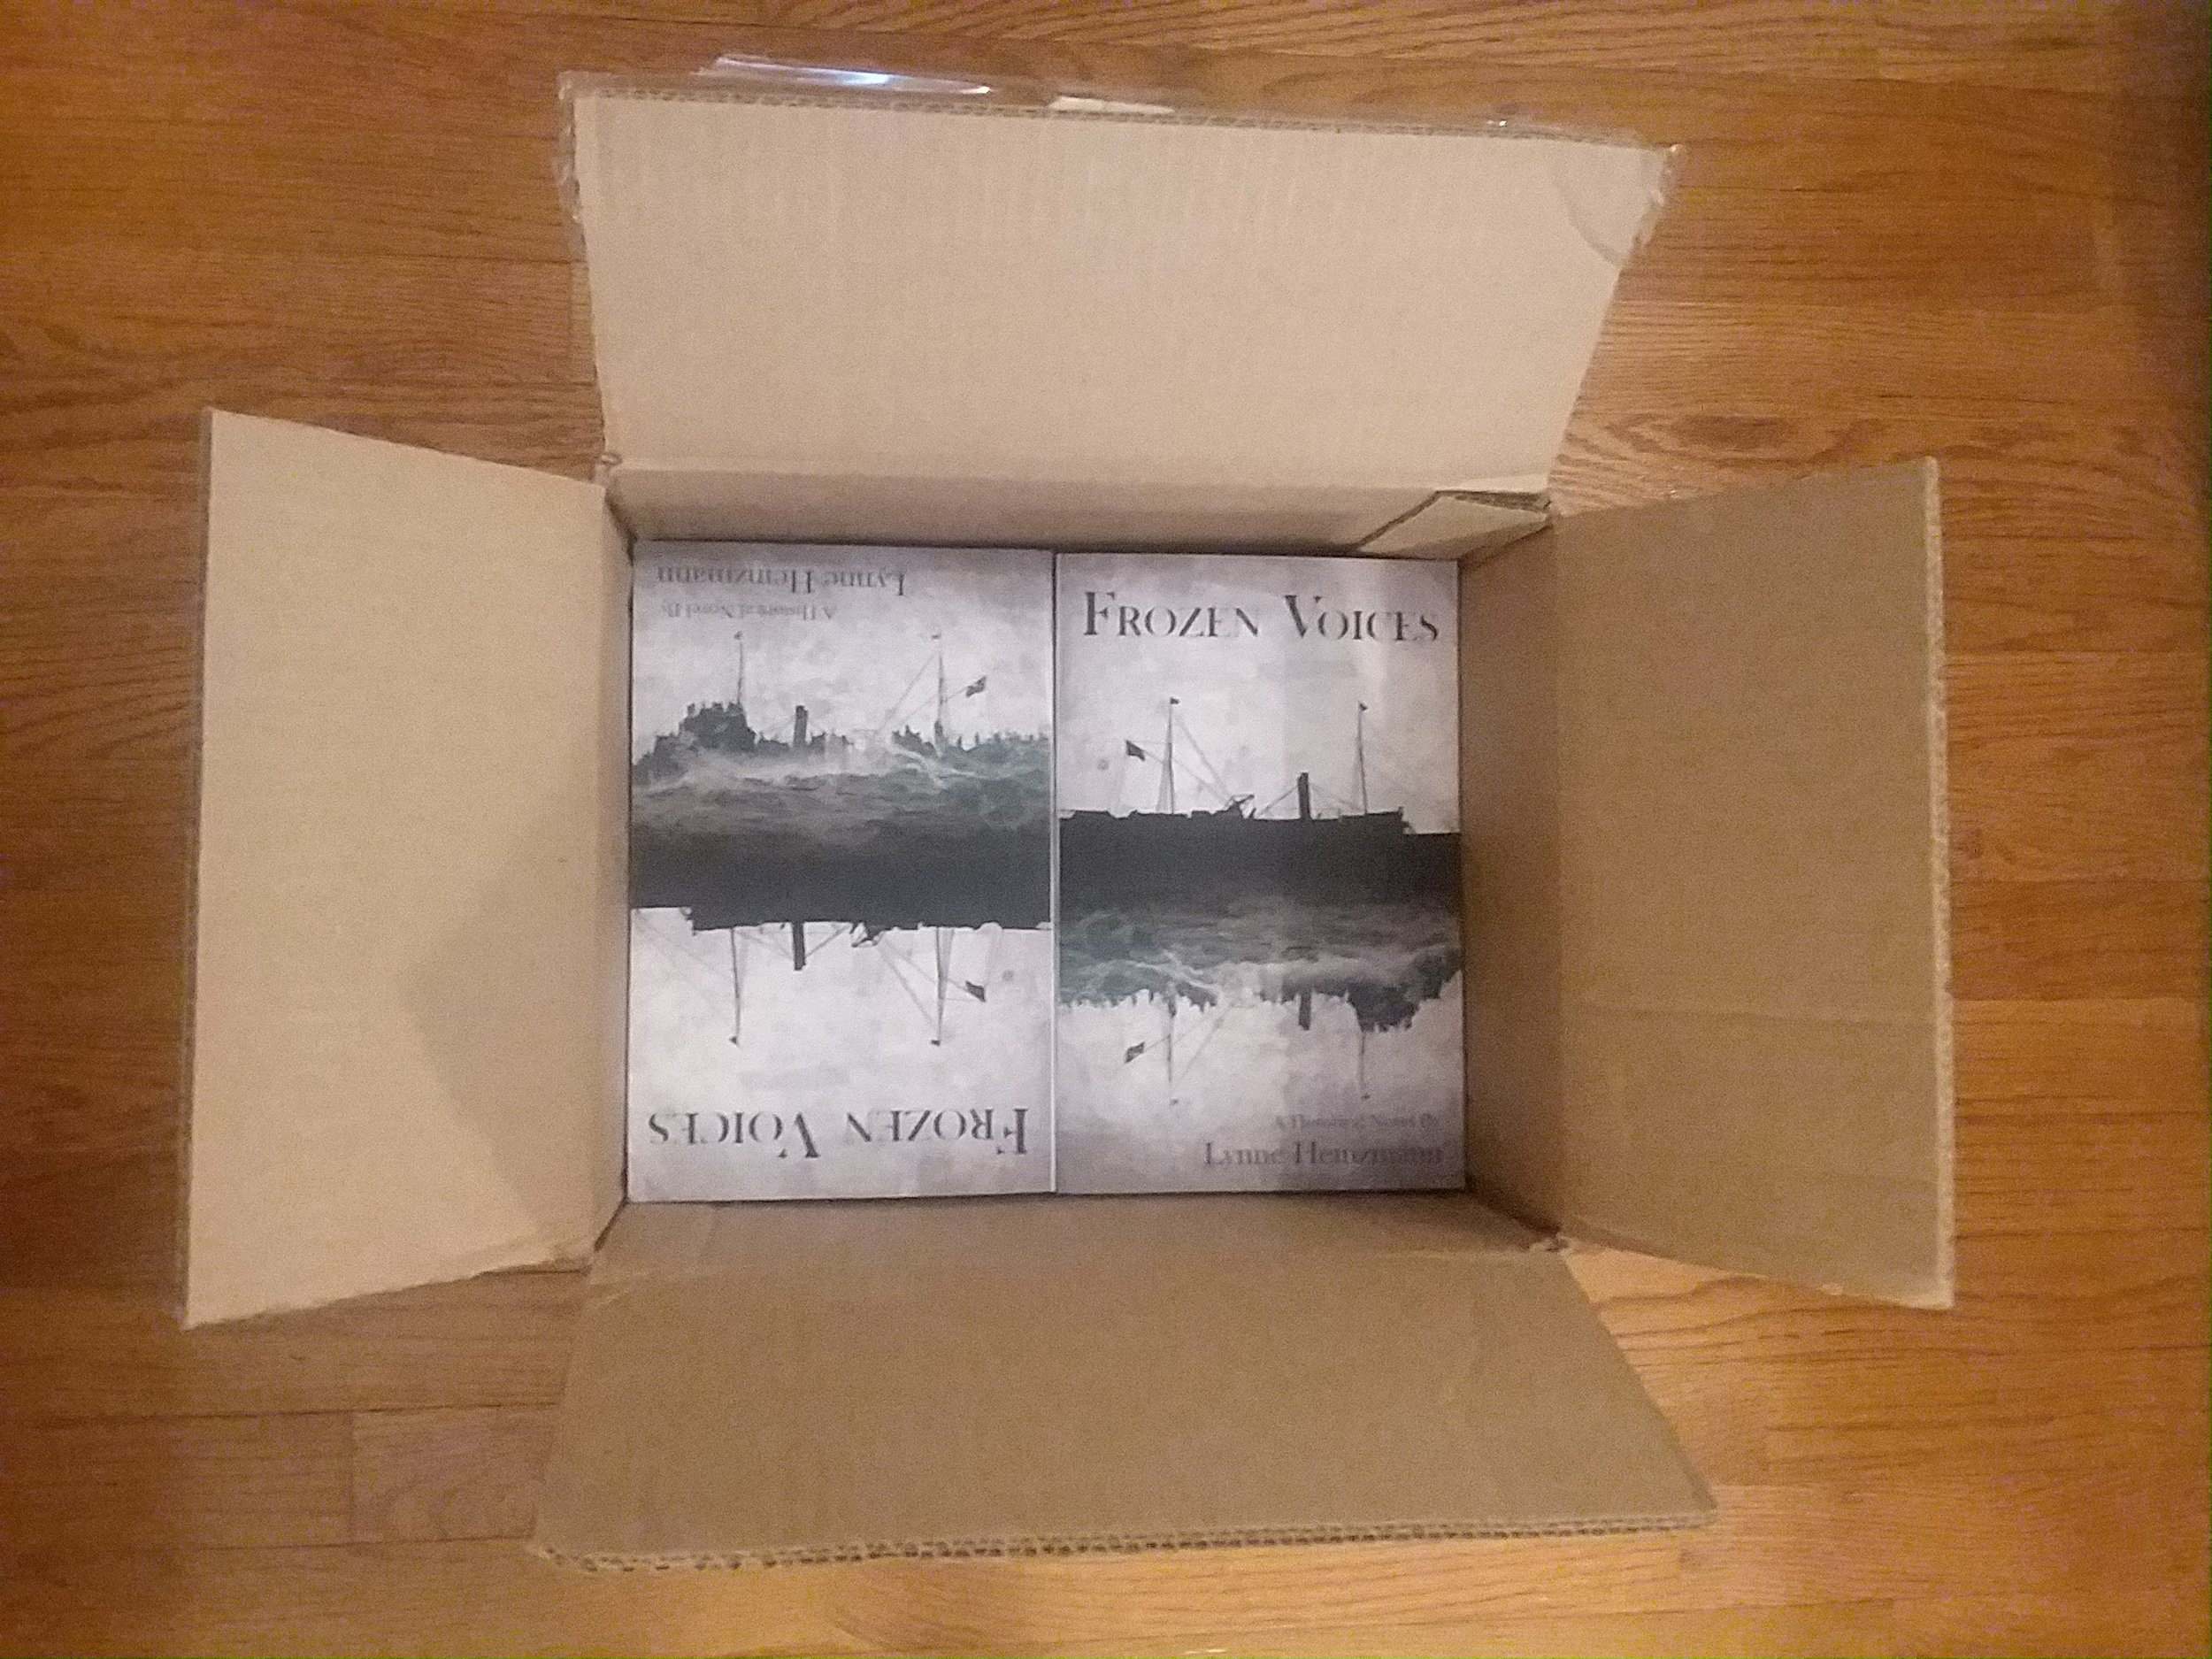 Box from New Rivers Press